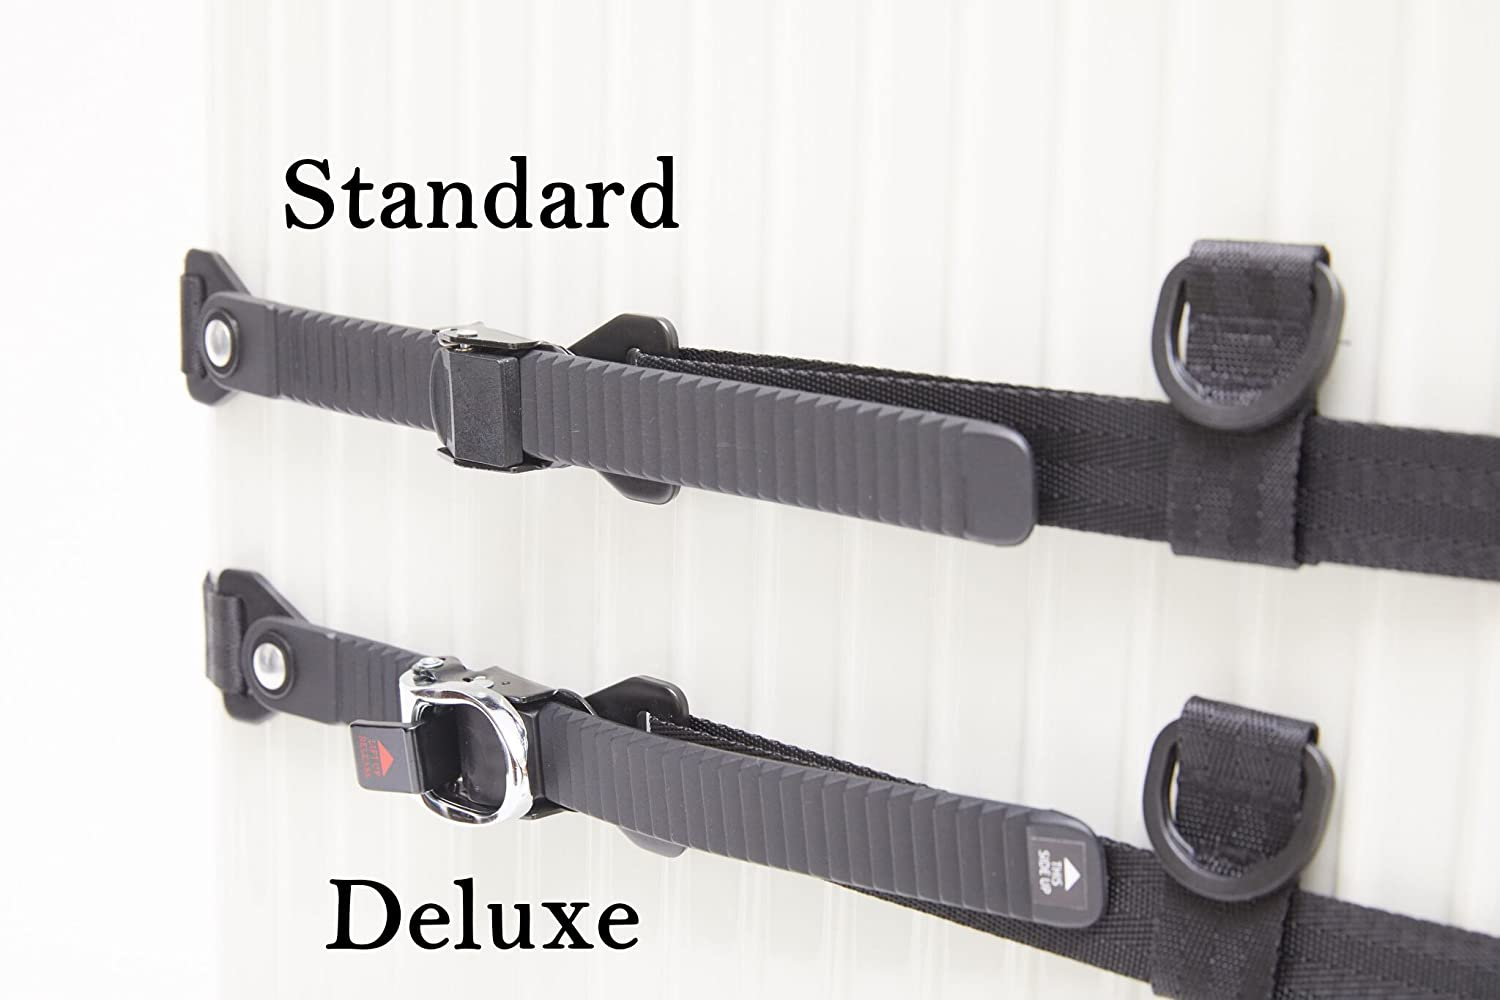 ADS Kids Car Seat Luggage Strap Toddler Car Seat Traveling Strap Luggage Travel Accessories//Car Seat Luggage Strap turn rolling bag in to ultra-portable travel solution Standard-Black